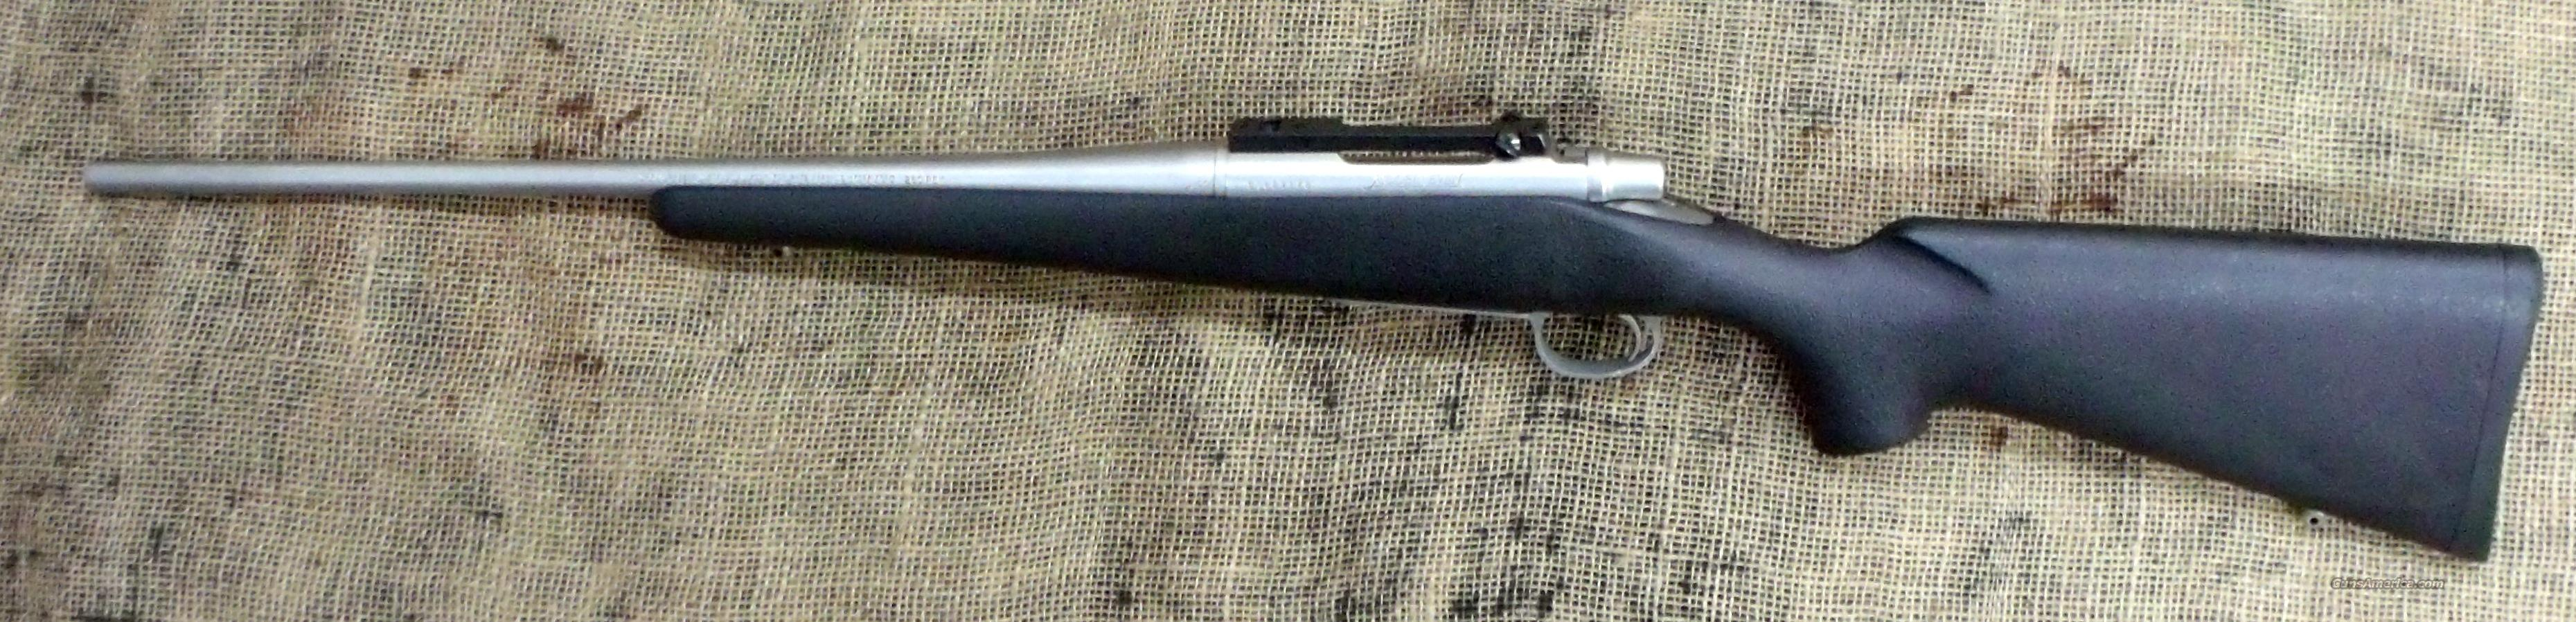 REMINGTON Mod. 7  Rifle, 260 Rem. Cal,  Guns > Rifles > Remington Rifles - Modern > Bolt Action Non-Model 700 > Sporting